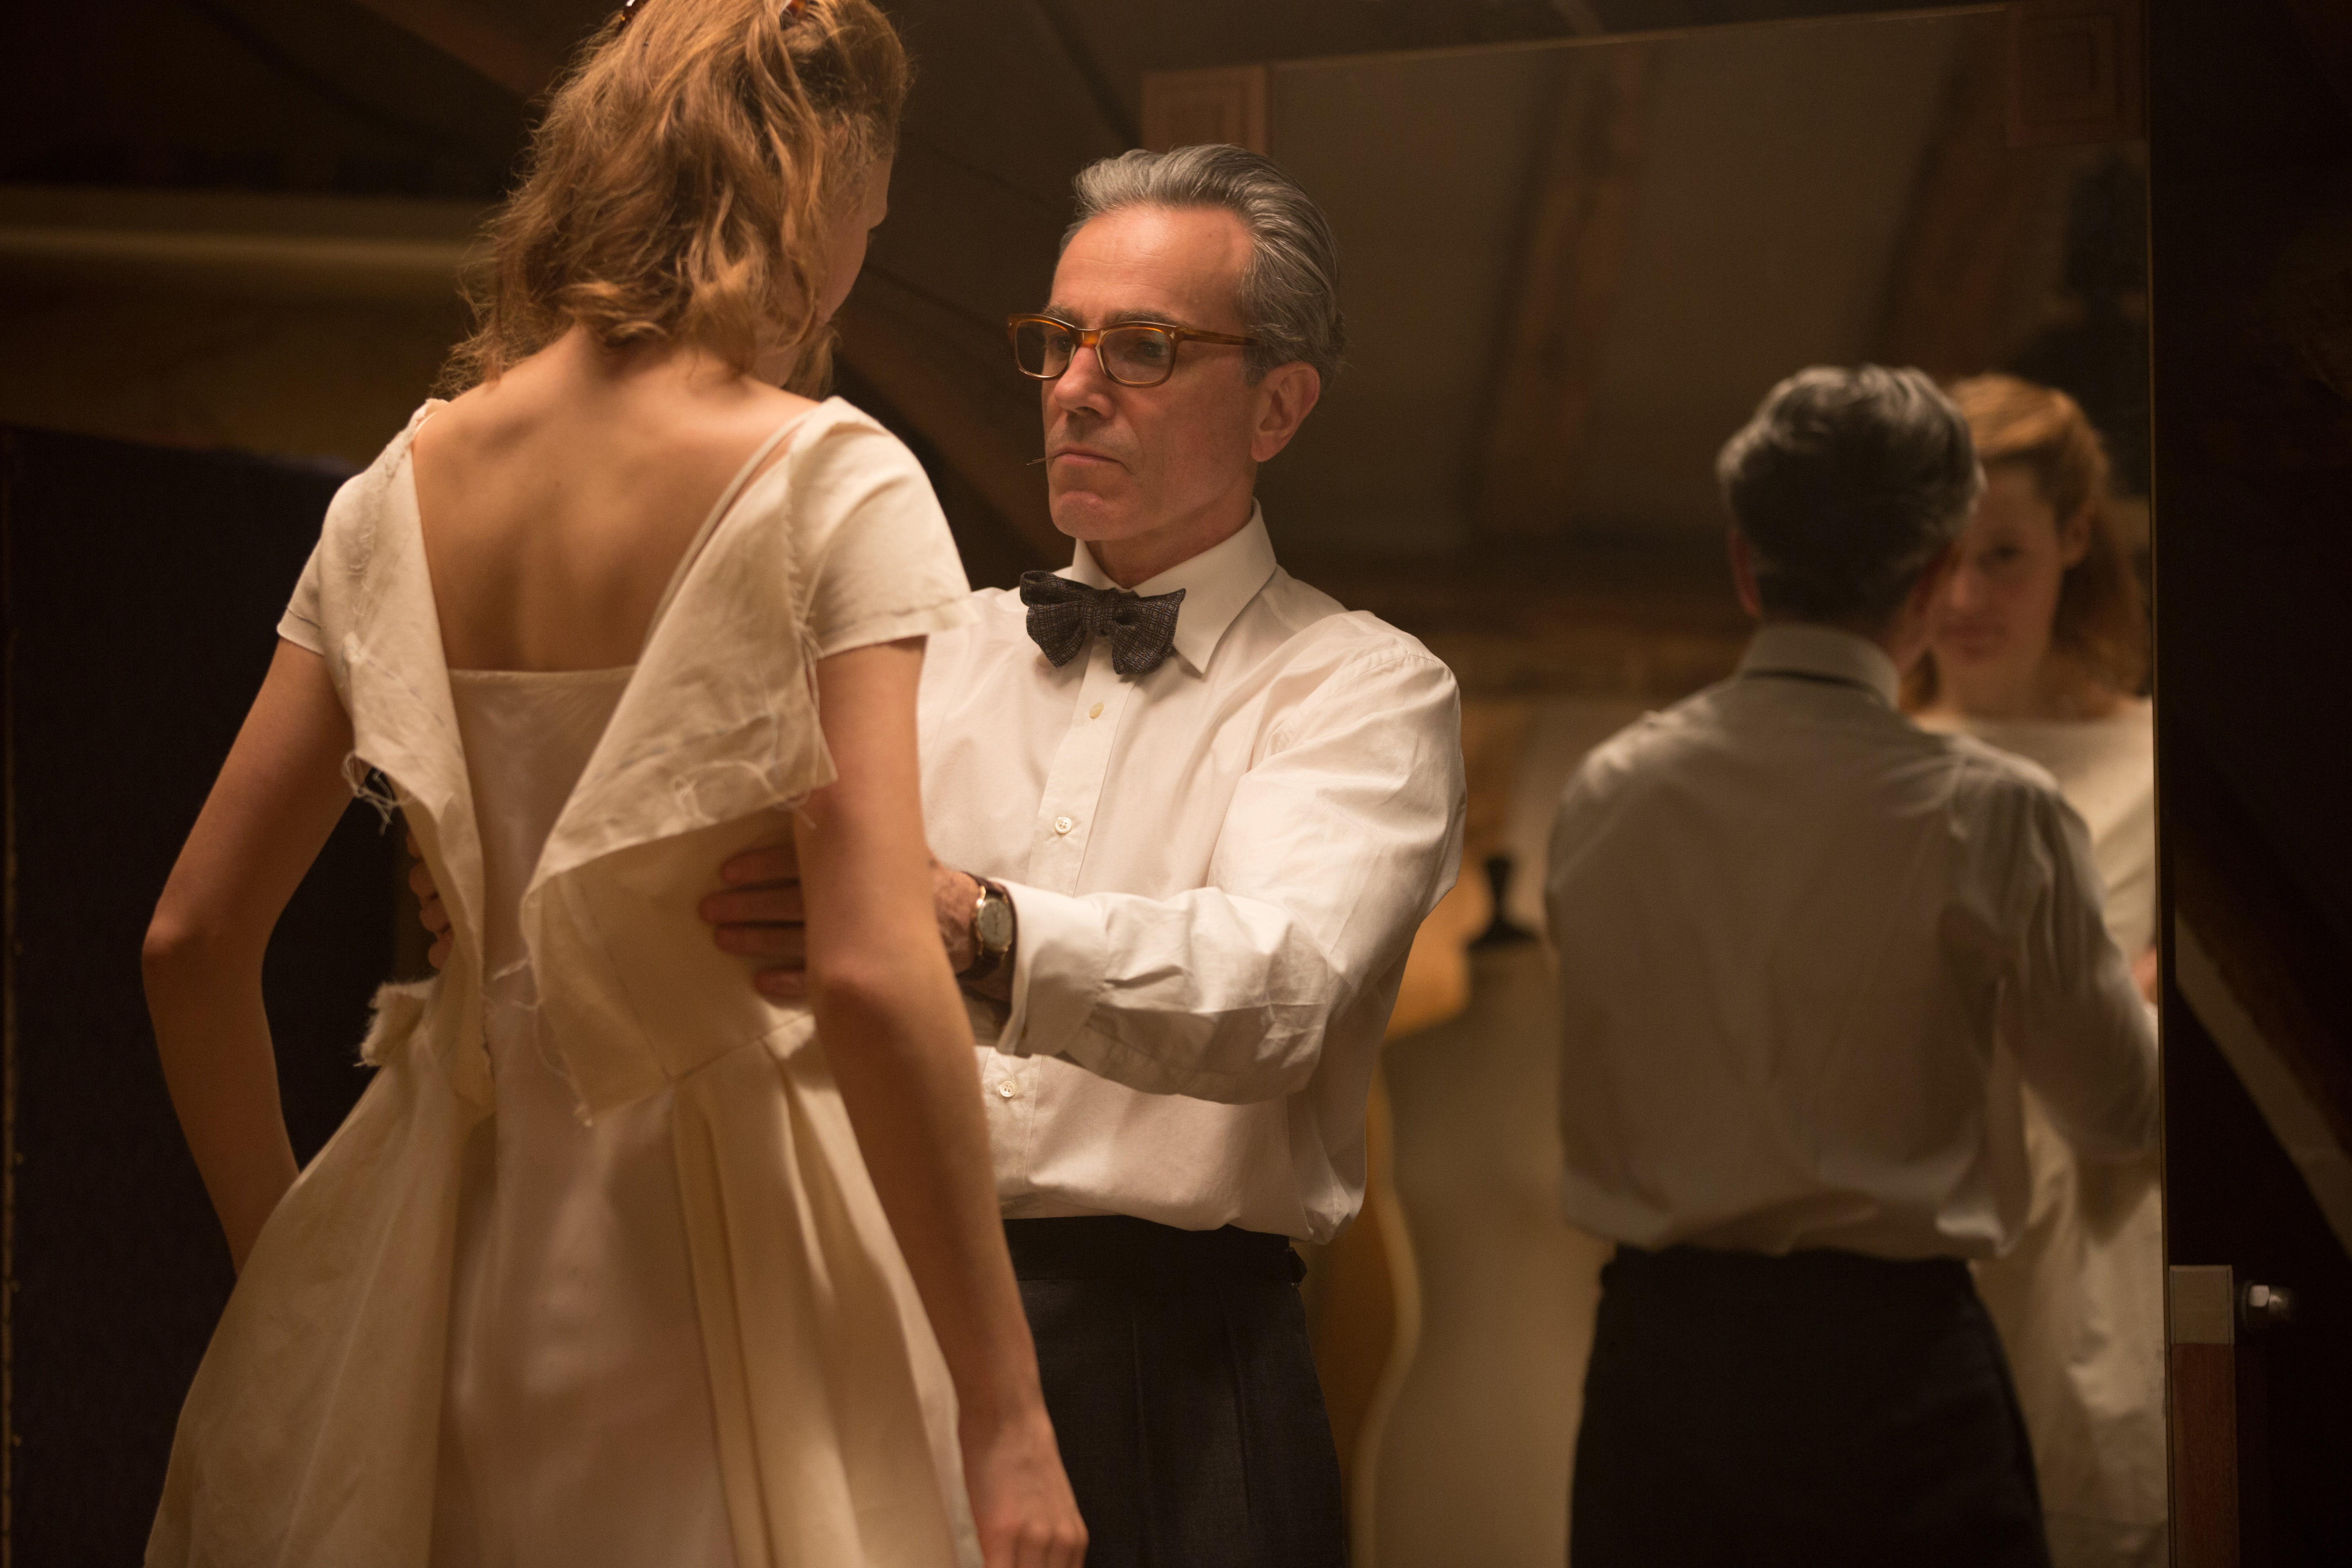 Vicky Krieps and Daniel Day-Lewis in Phantom Thread   Source: Photo by Laurie Sparham at Focus Features